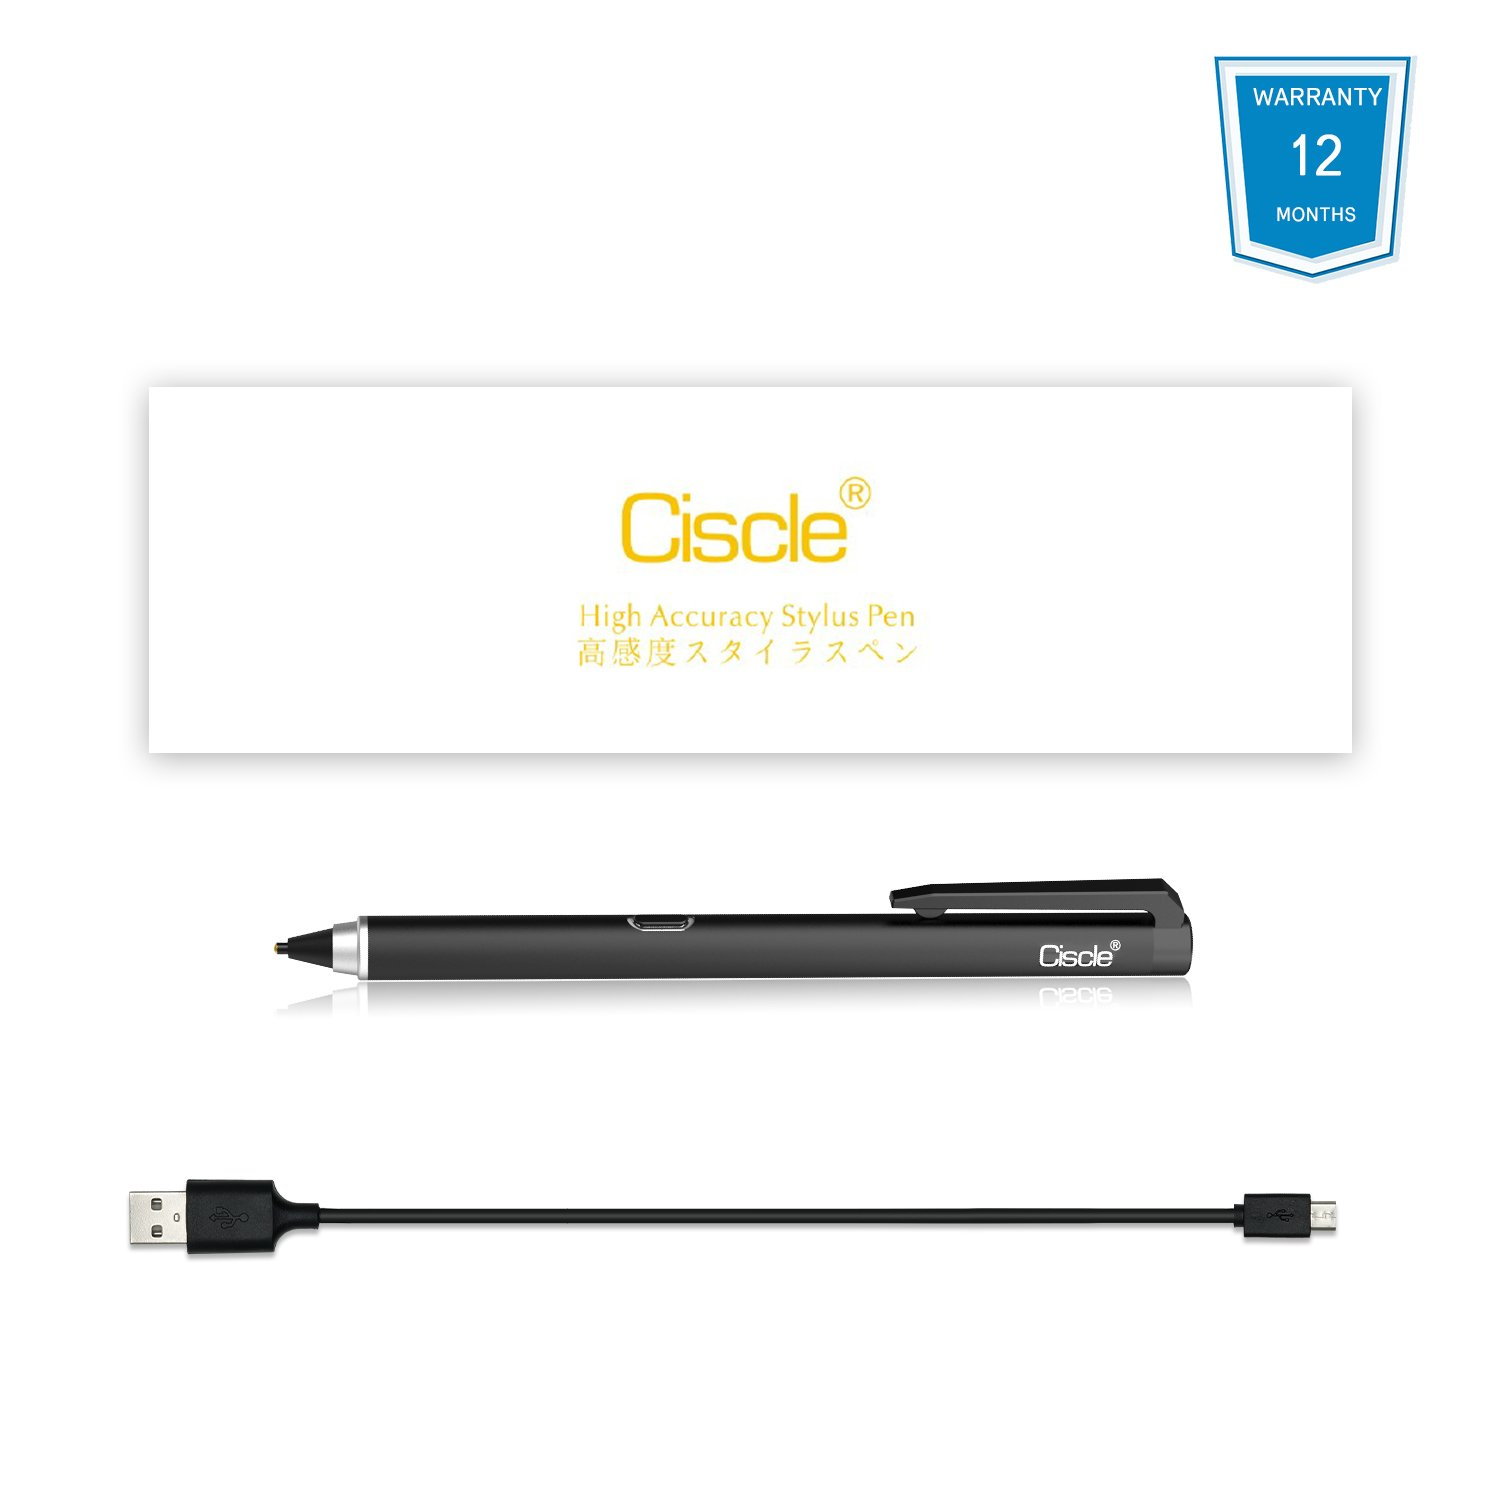 Active Stylus Pen, Ciscle Capacitive Digital Pen, 5 Mins Auto Power Off with High Precision Sensitivity 1.5mm Copper Tip, Fine Point Stylus for Touch Screen Devices, iPad/iPhone/Android Tablets-Black by Ciscle (Image #7)